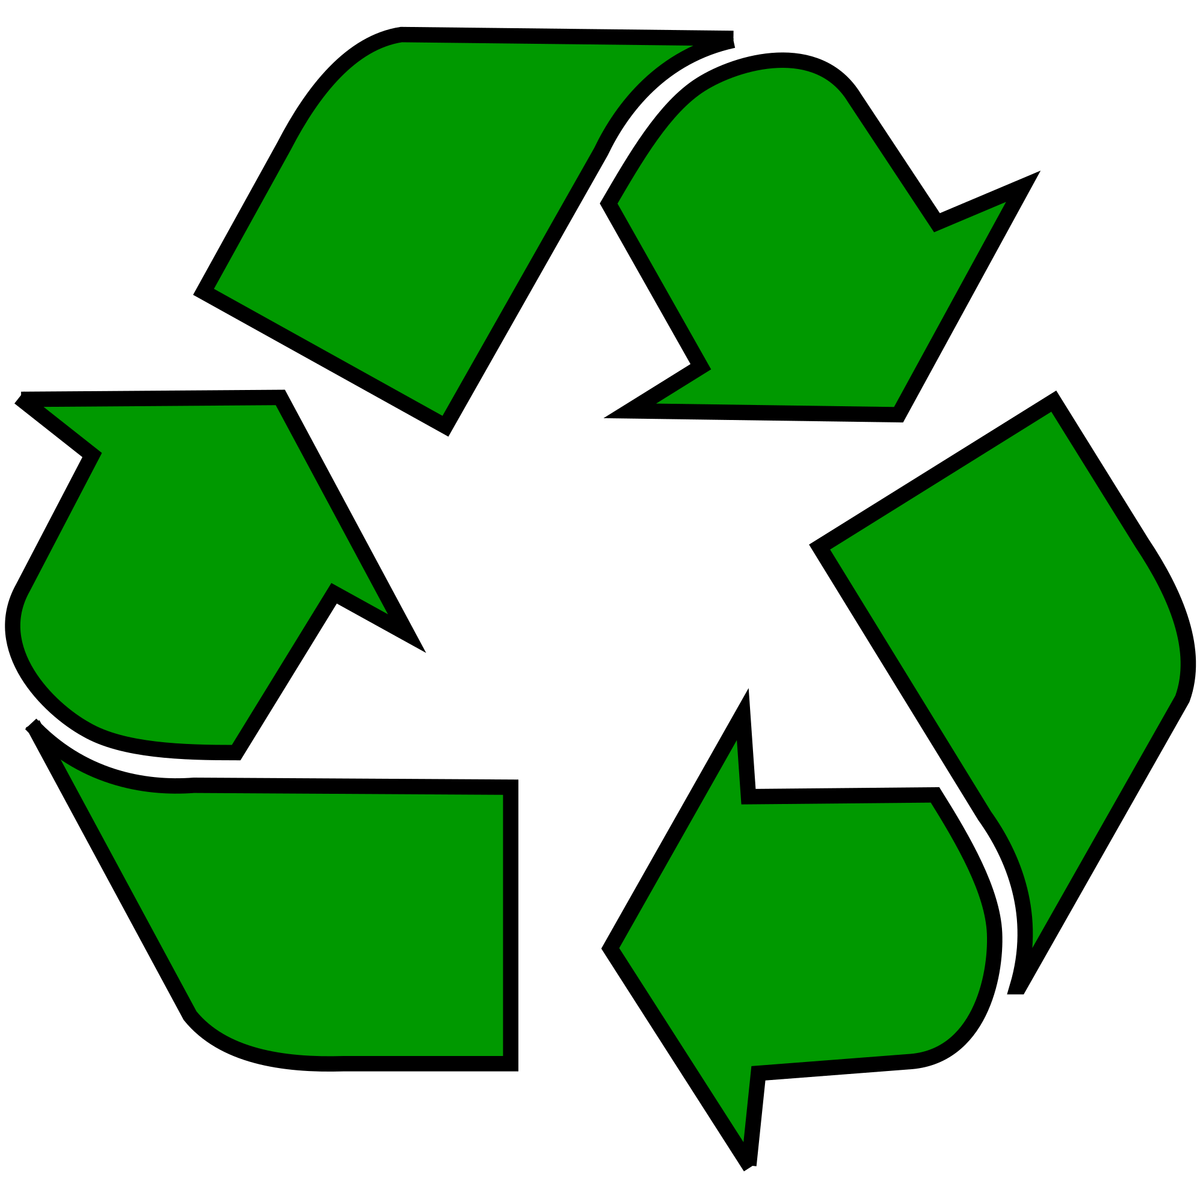 Volunteering clipart sustainability.  january what is